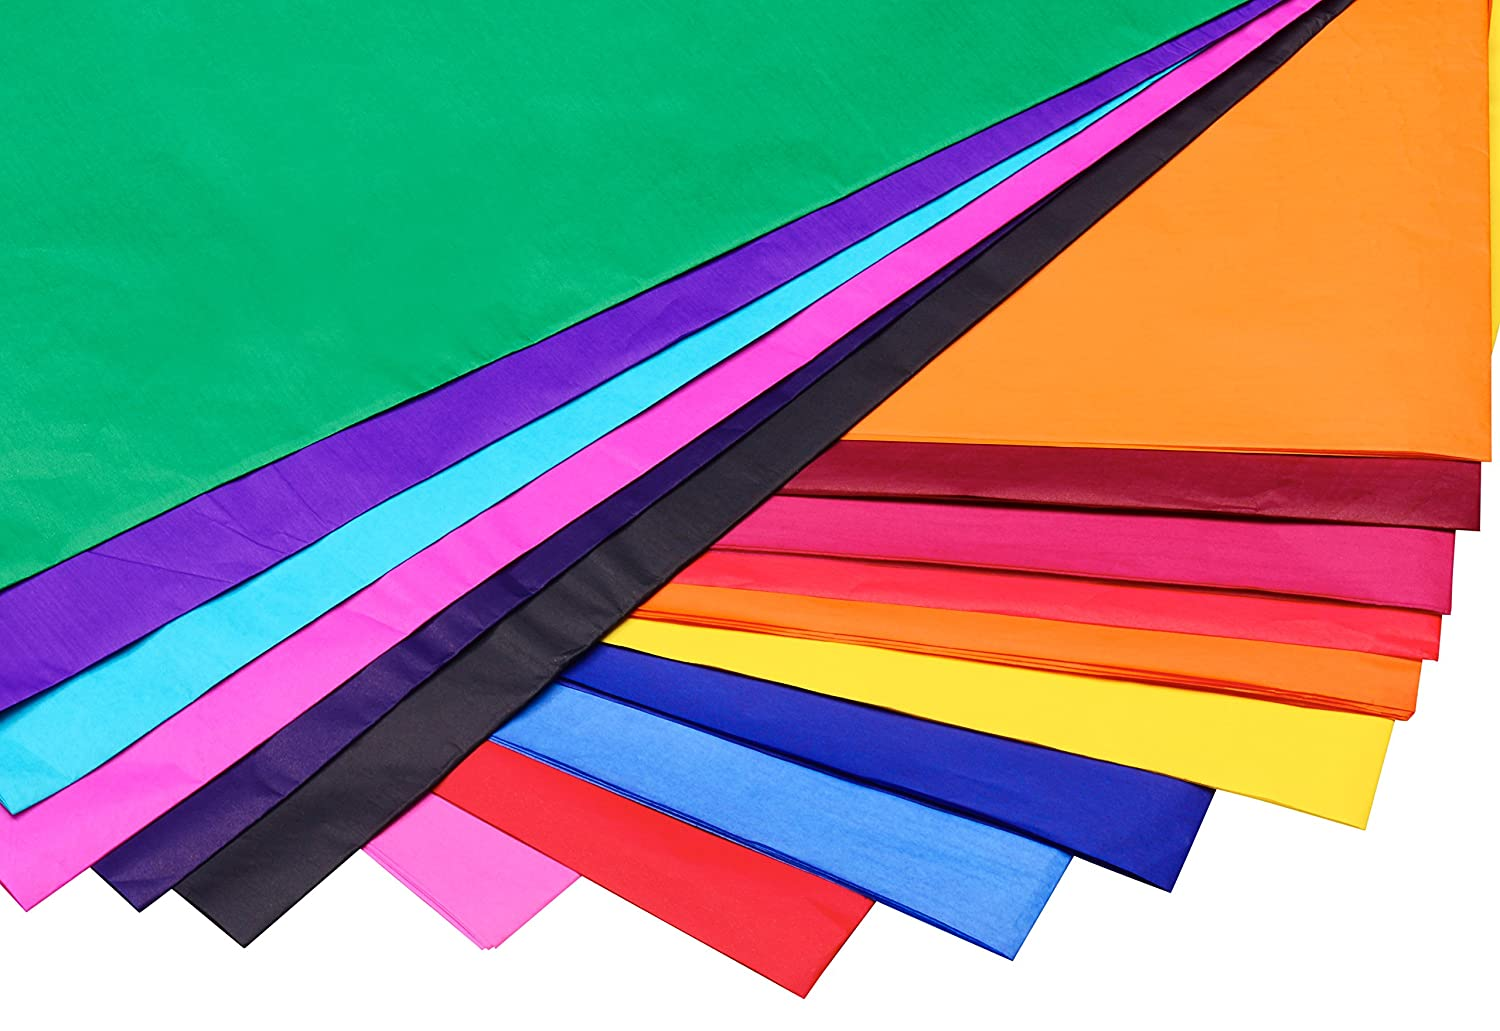 Amazon tissue paper craft paper colored paper larger 19 23 amazon tissue paper craft paper colored paper larger 19 23 x 29 12 heavier thicker 21gsm more colors 25 vibrant colors 100 sheets paper crafts jeuxipadfo Gallery